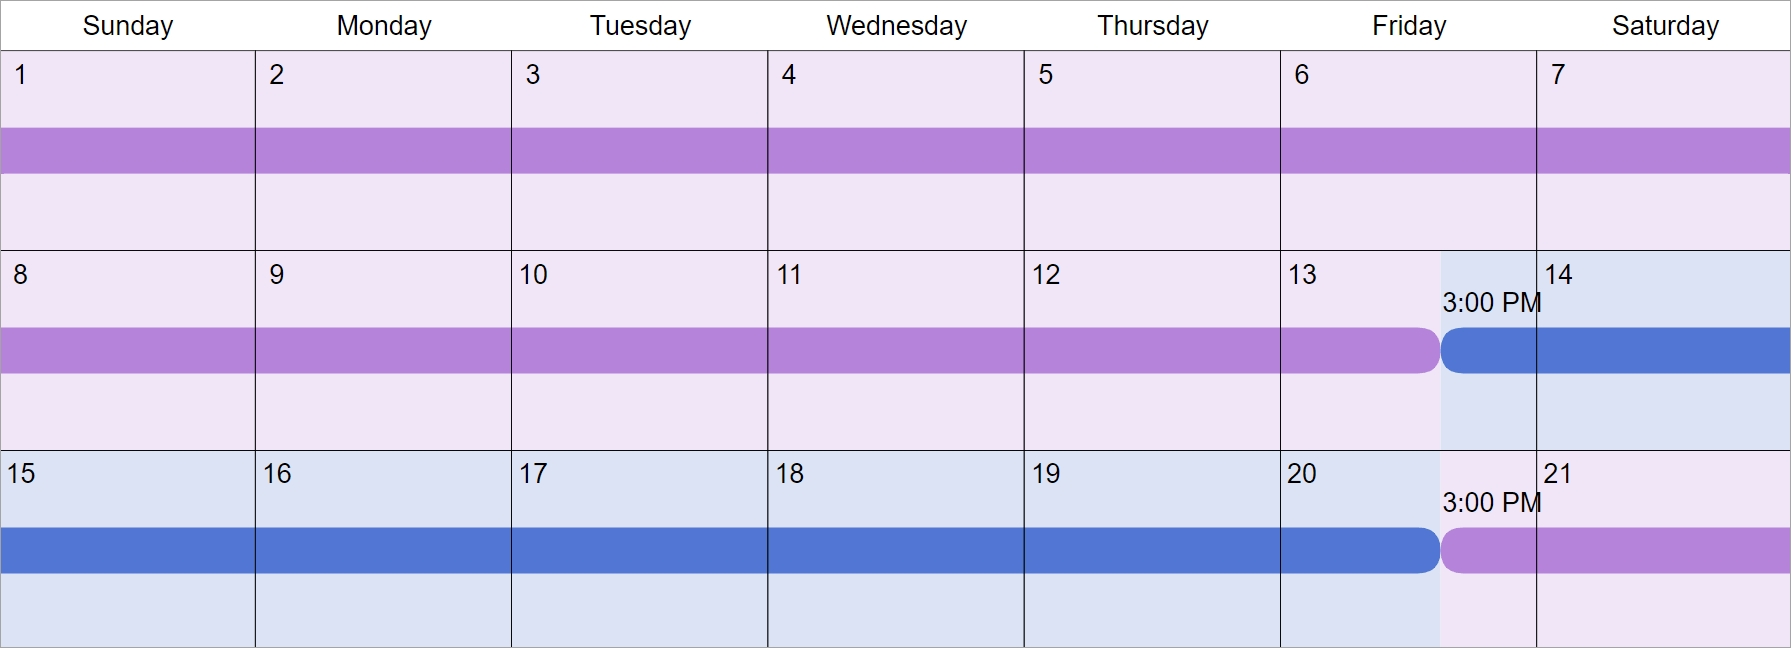 Every 3Rd Week Custody & Visitation Schedule Examples